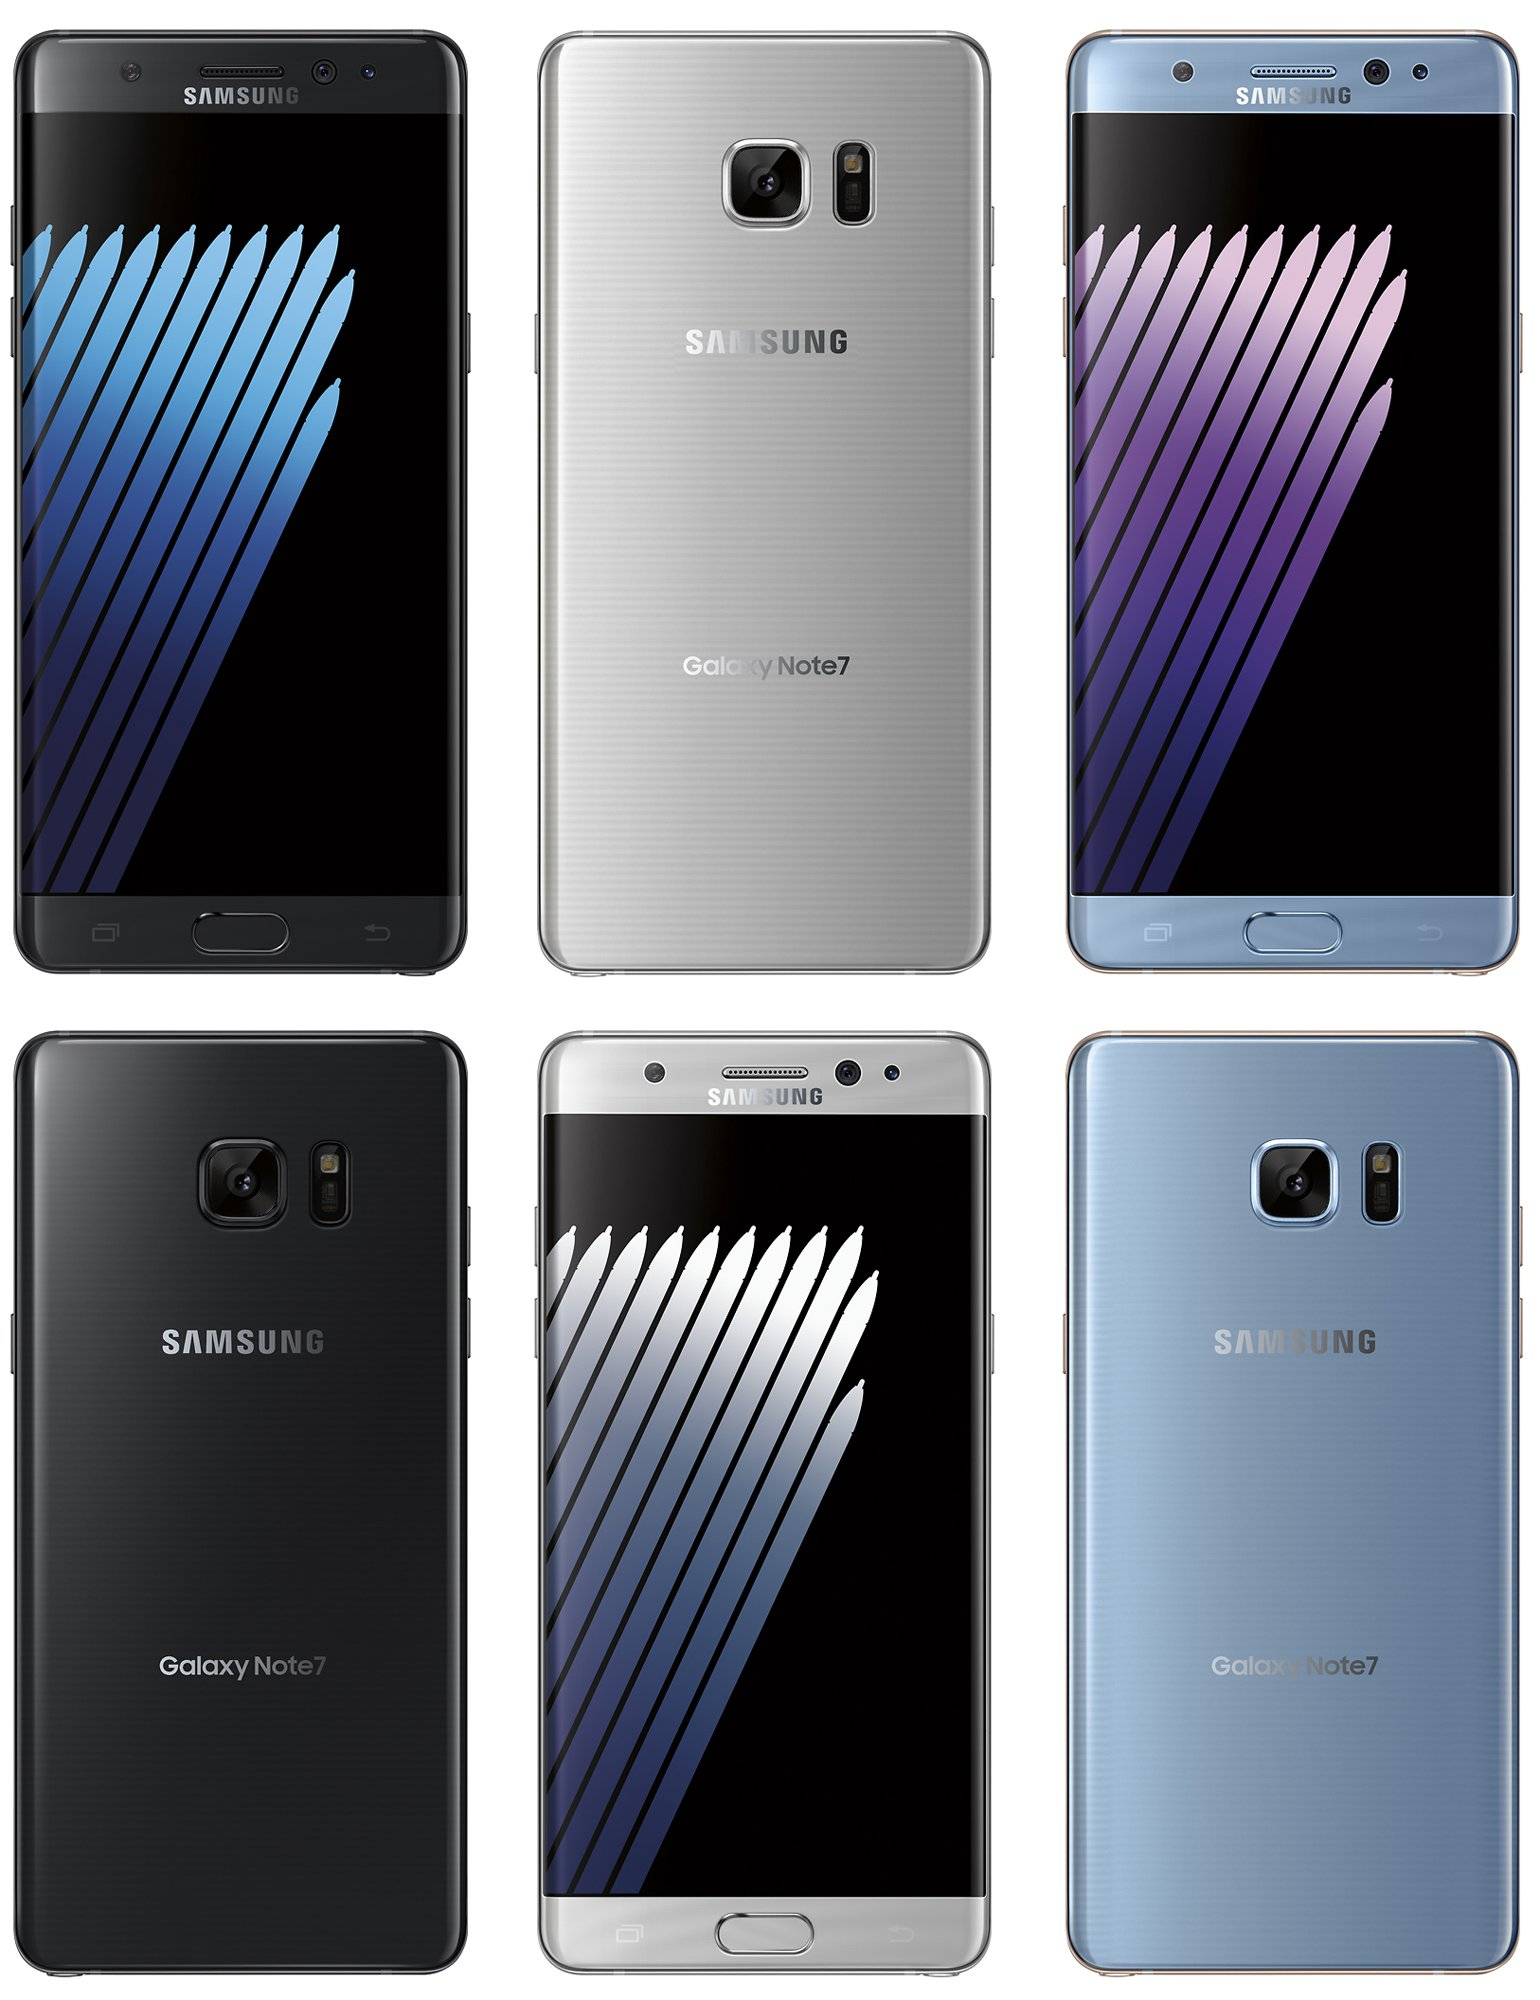 Galaxy Note 7 leak evan blass